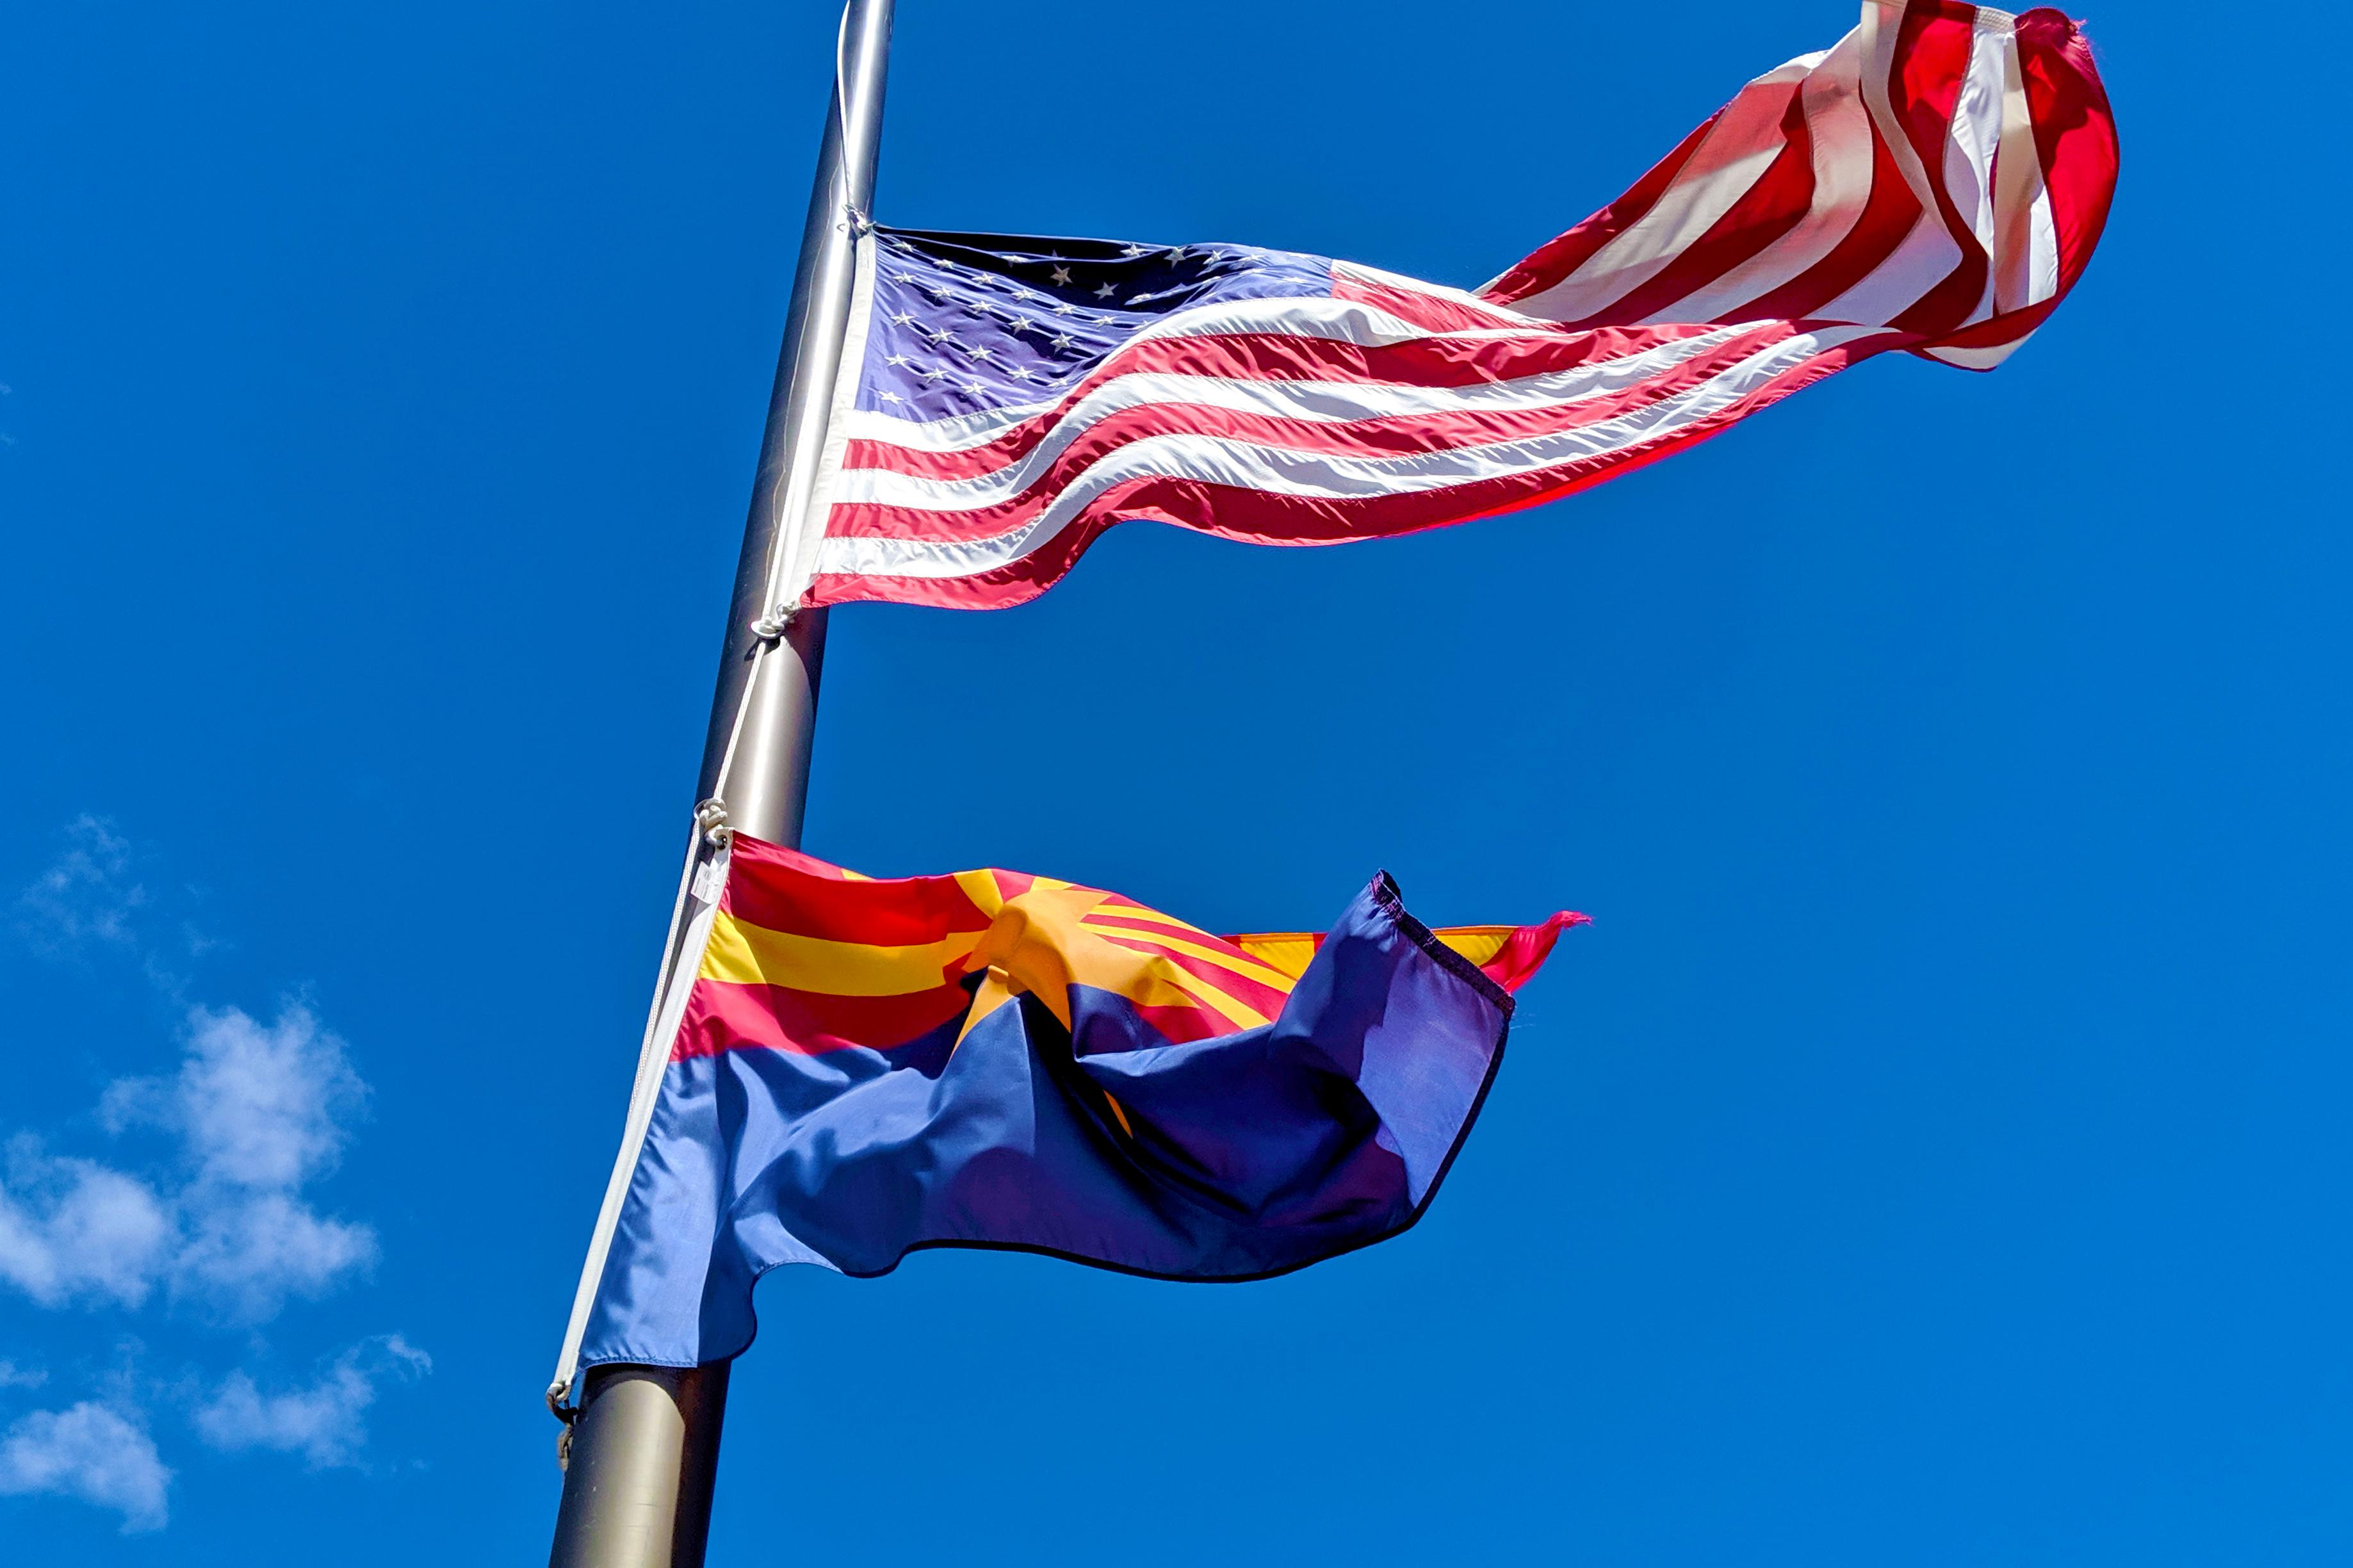 U.S. and Arizona flag